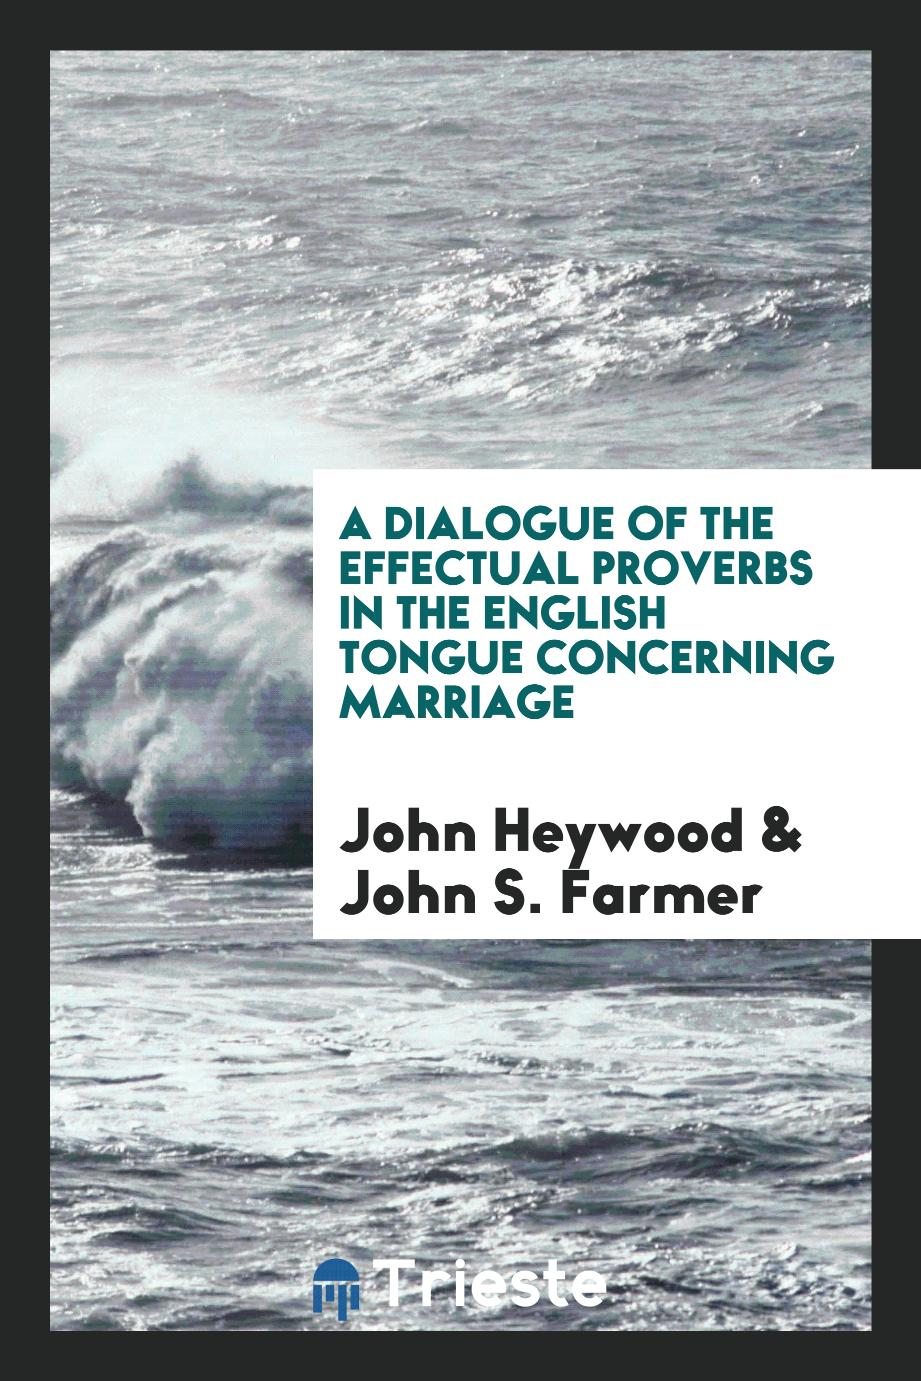 A dialogue of the effectual proverbs in the English tongue concerning marriage